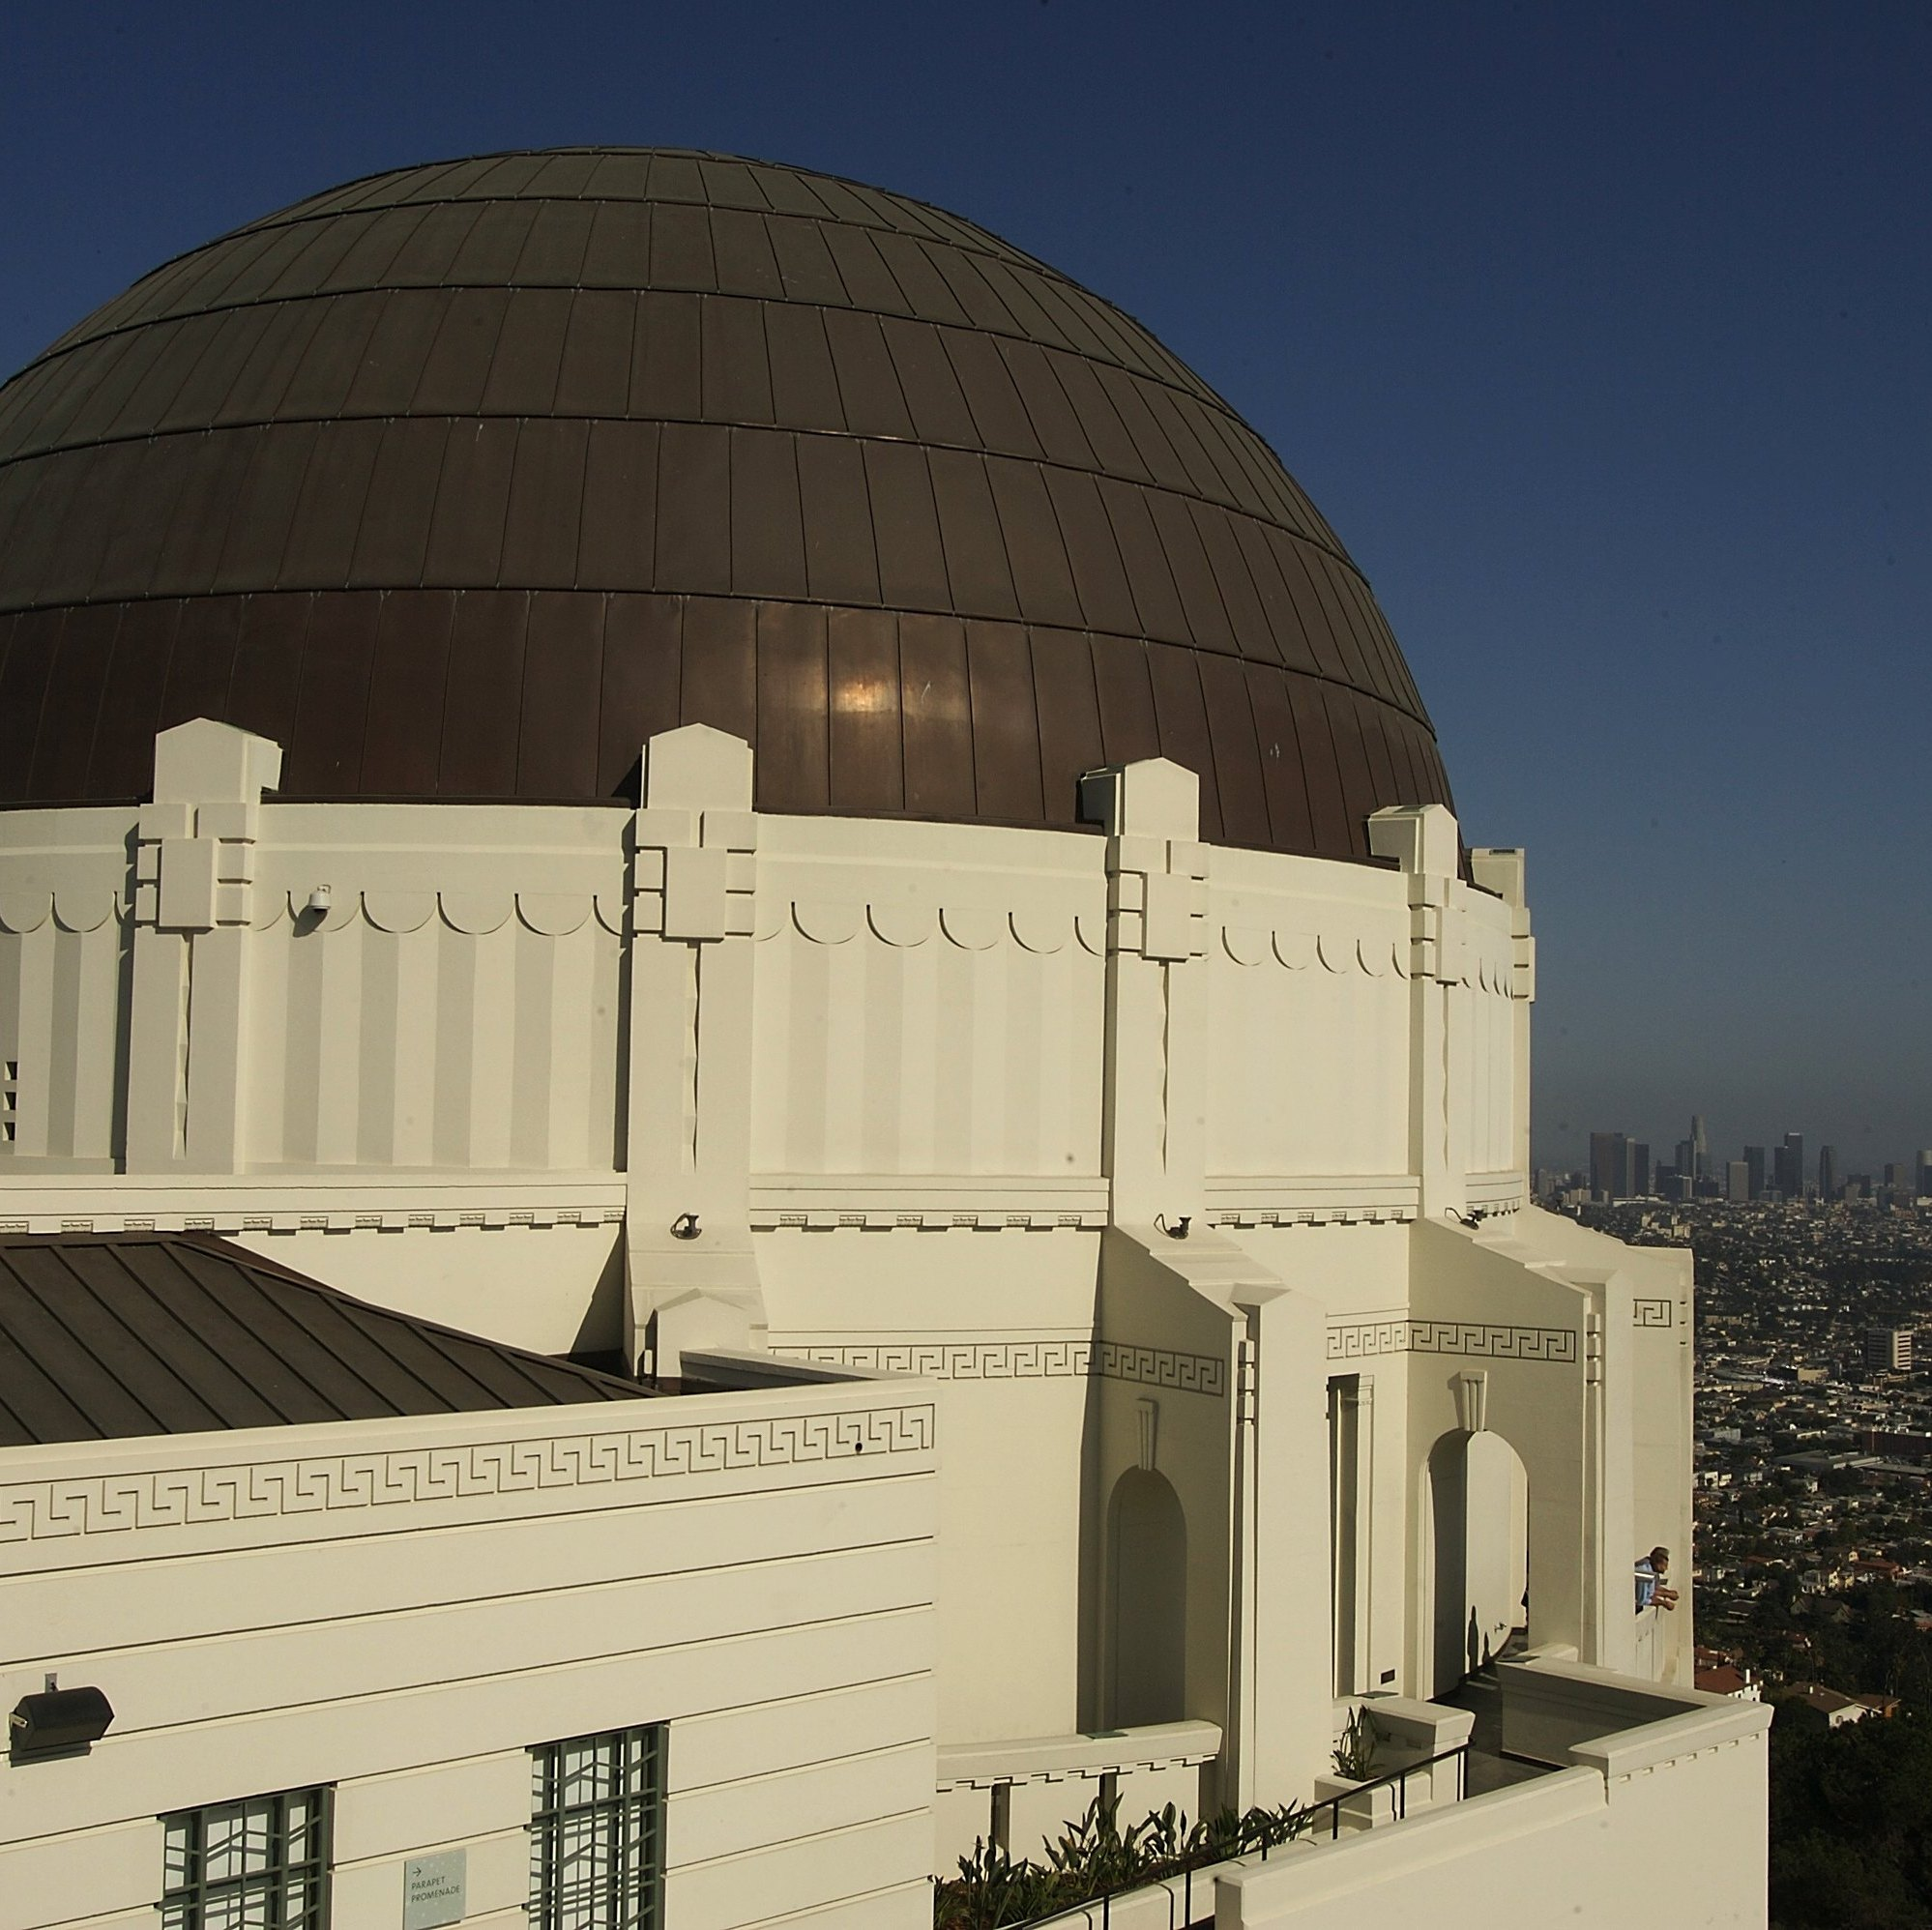 LA's iconic Griffith Observatory is just one of the many sights that define the city for Robert Crais.